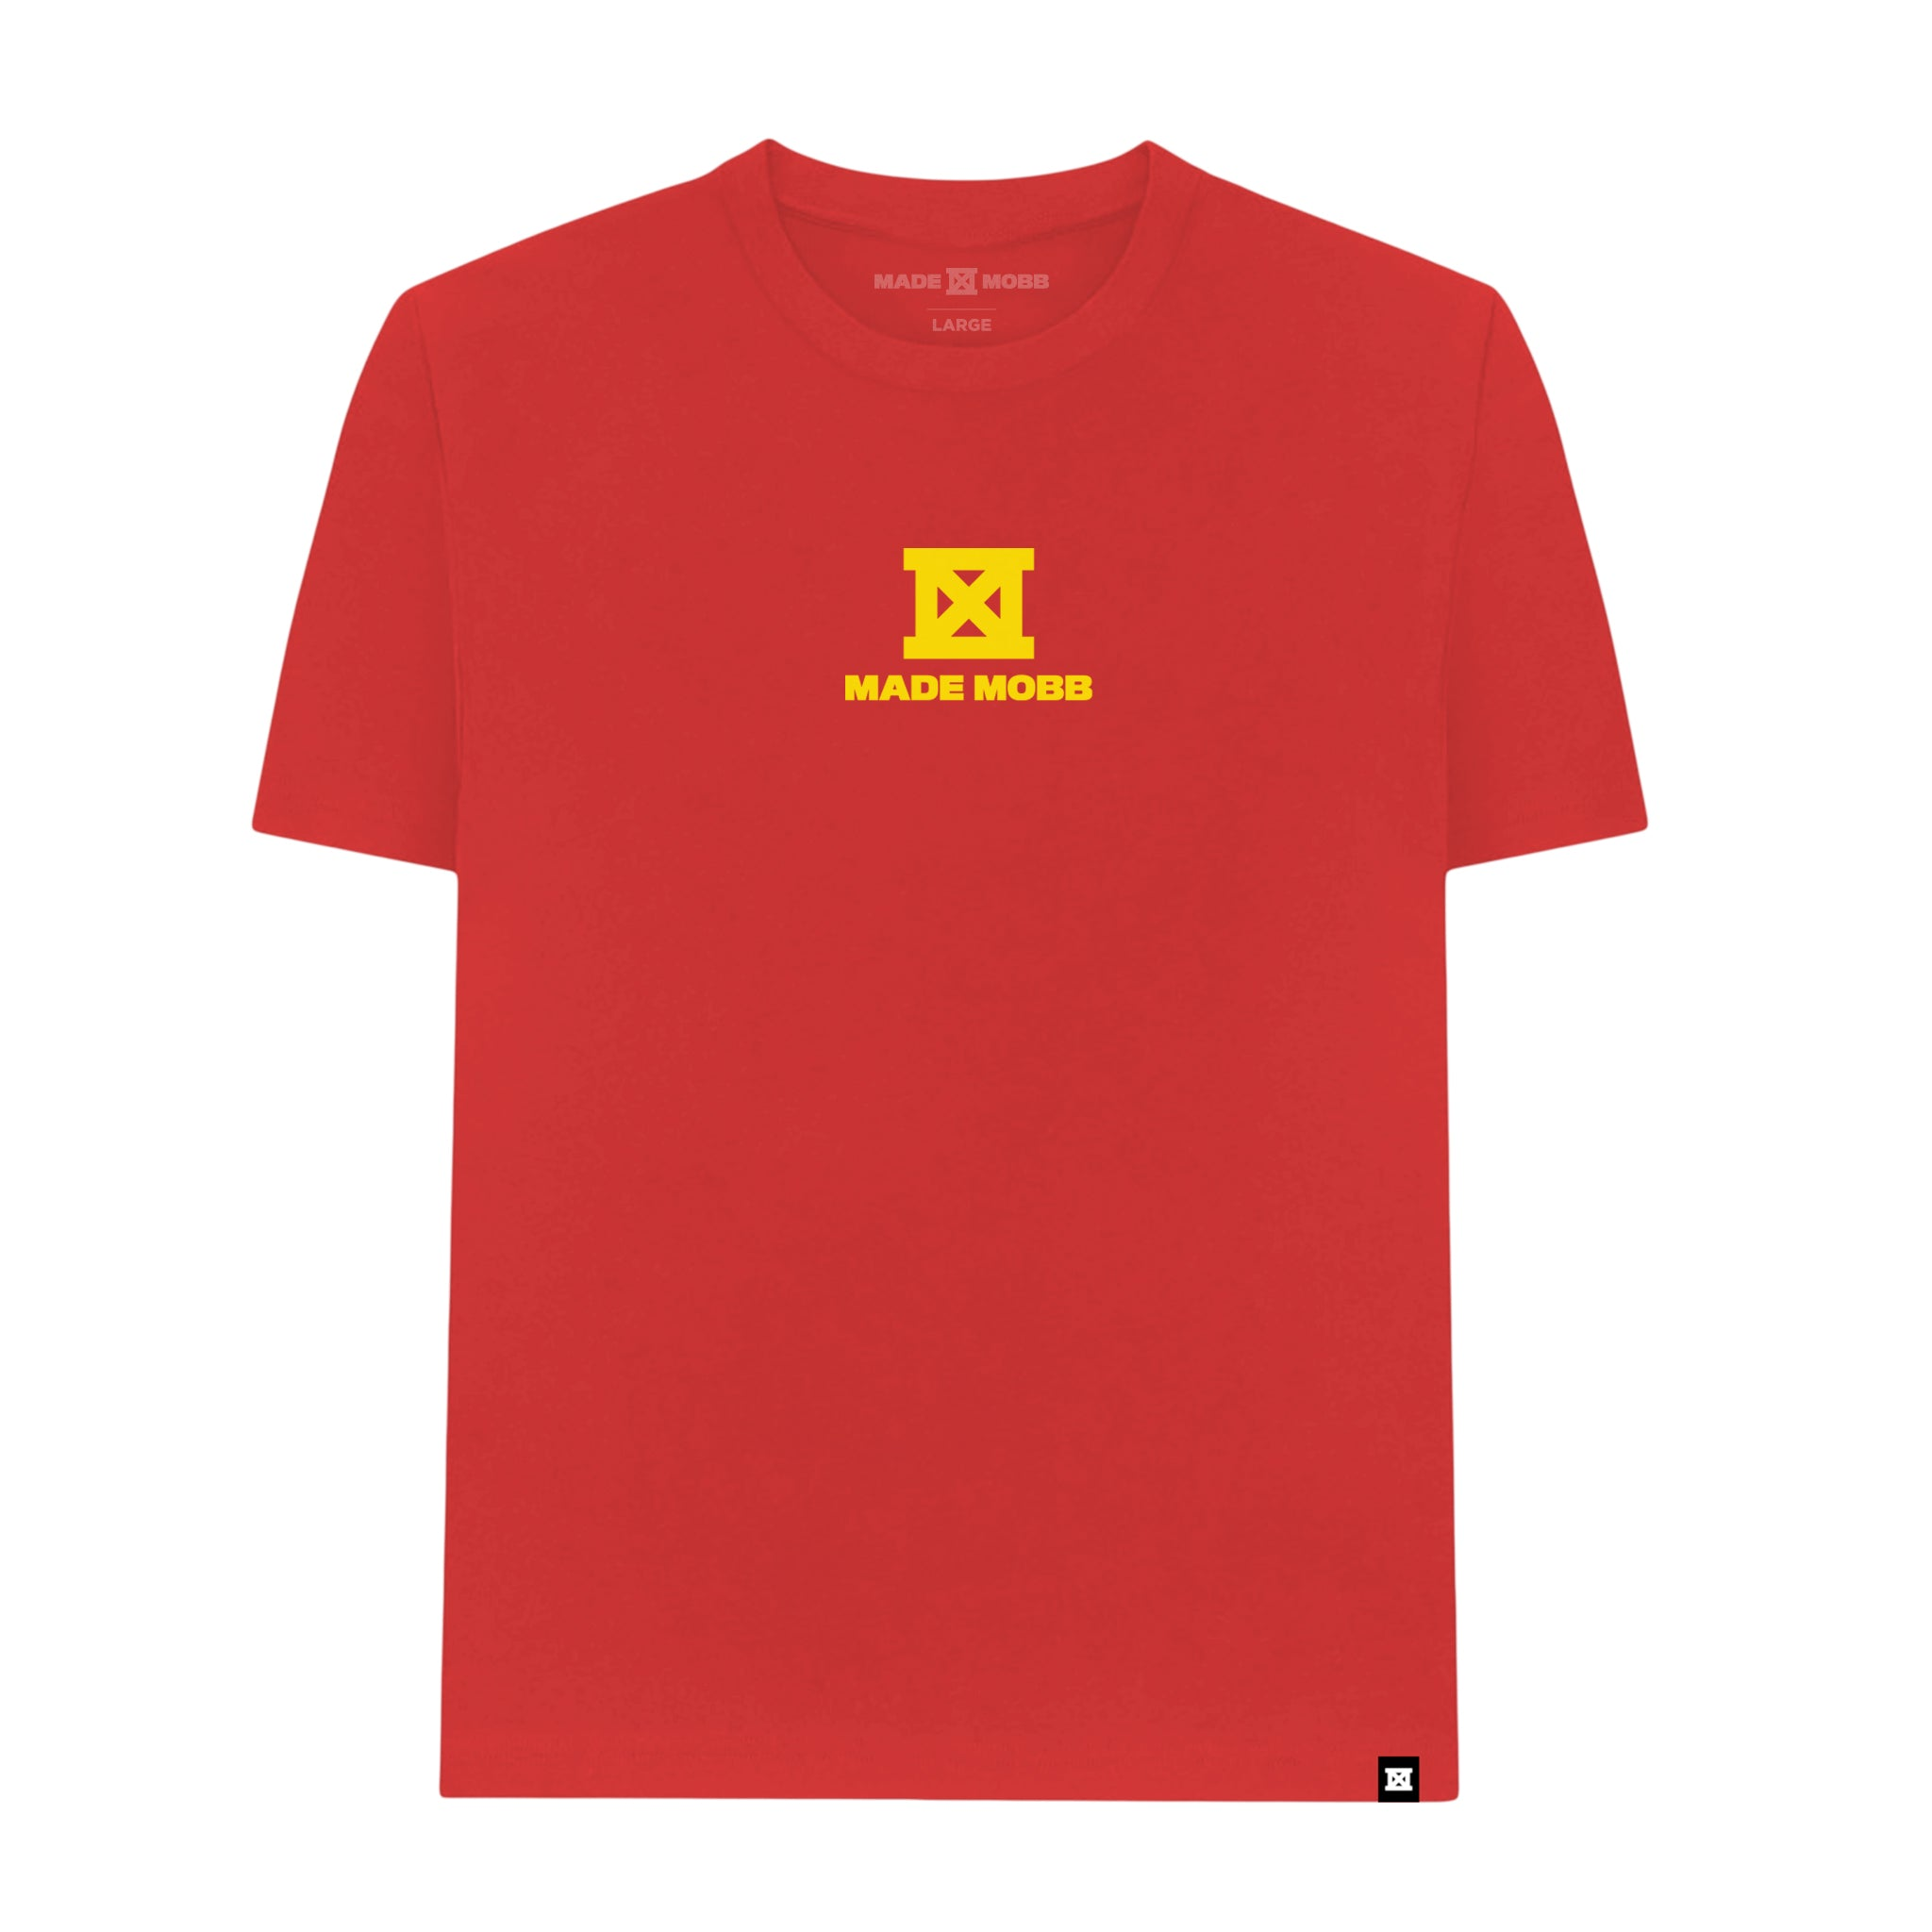 This Aint Luck Tee - Red & Yellow